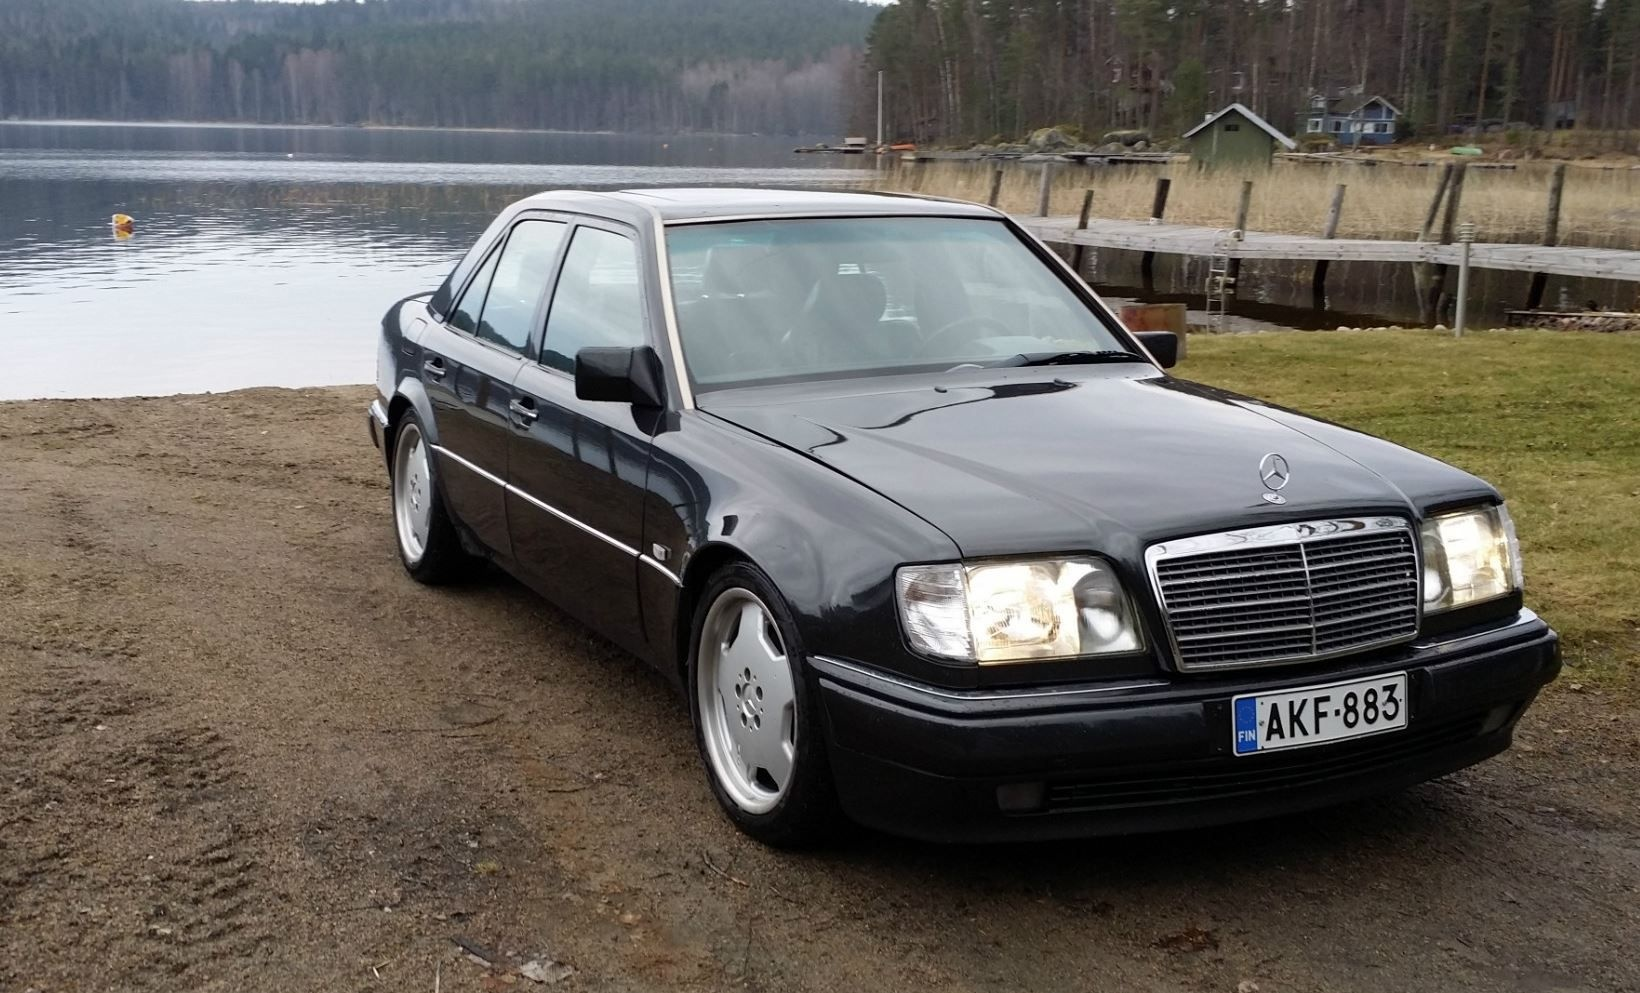 Mercedes W124 Modified Luxury W124 500 E Bonnet Mercedes Benz Mercedes Mercedesbenz Amg-1355 Of Fresh Mercedes W124 Modified